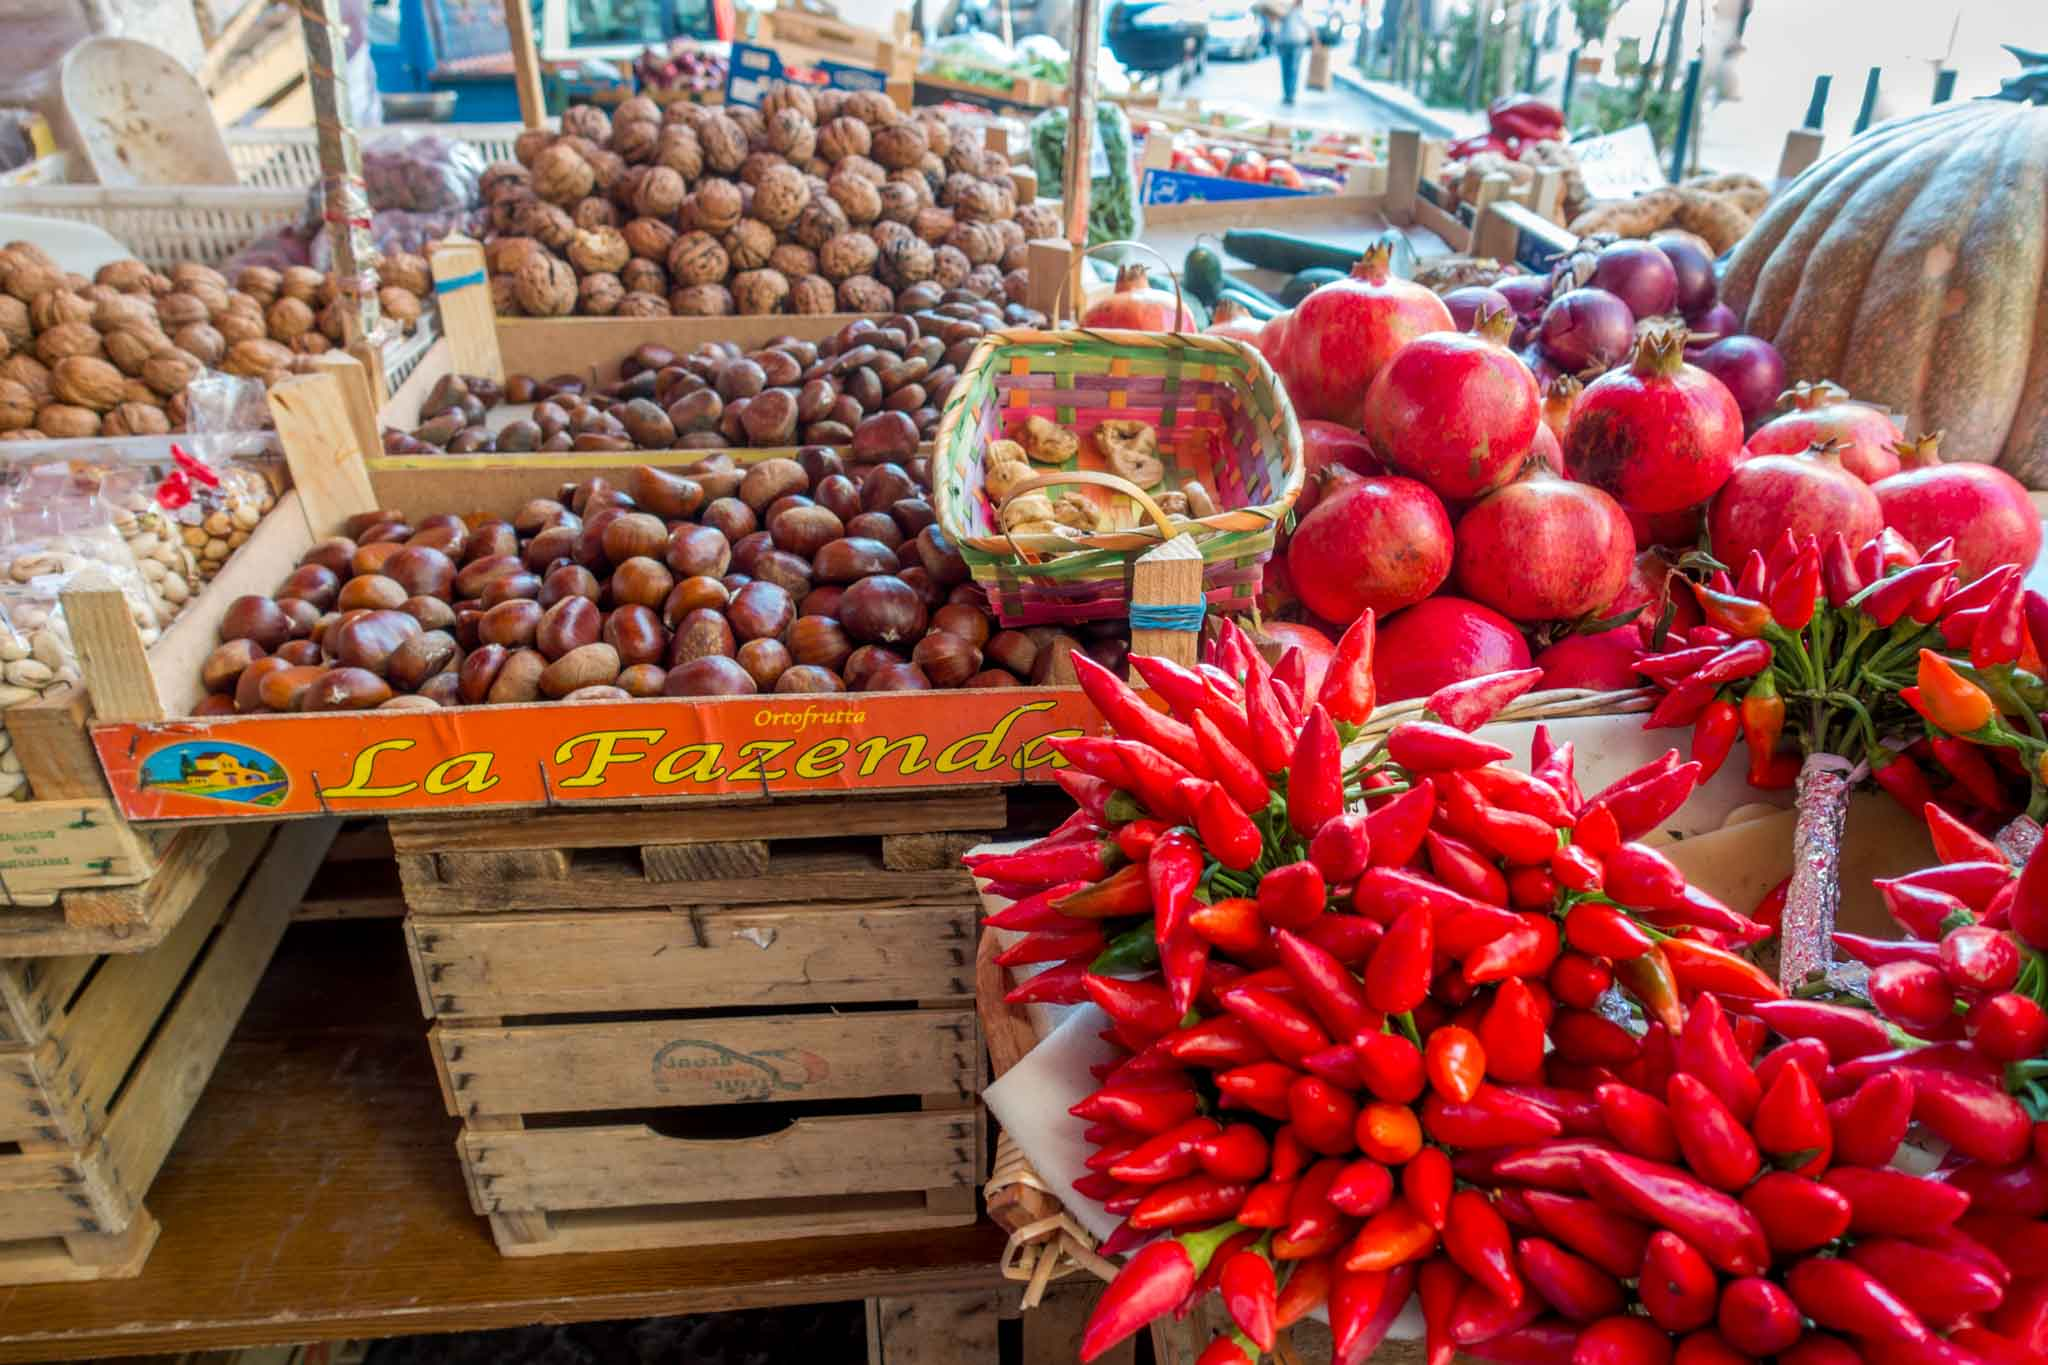 Peppers and nuts displayed at the Capo market in Palermo